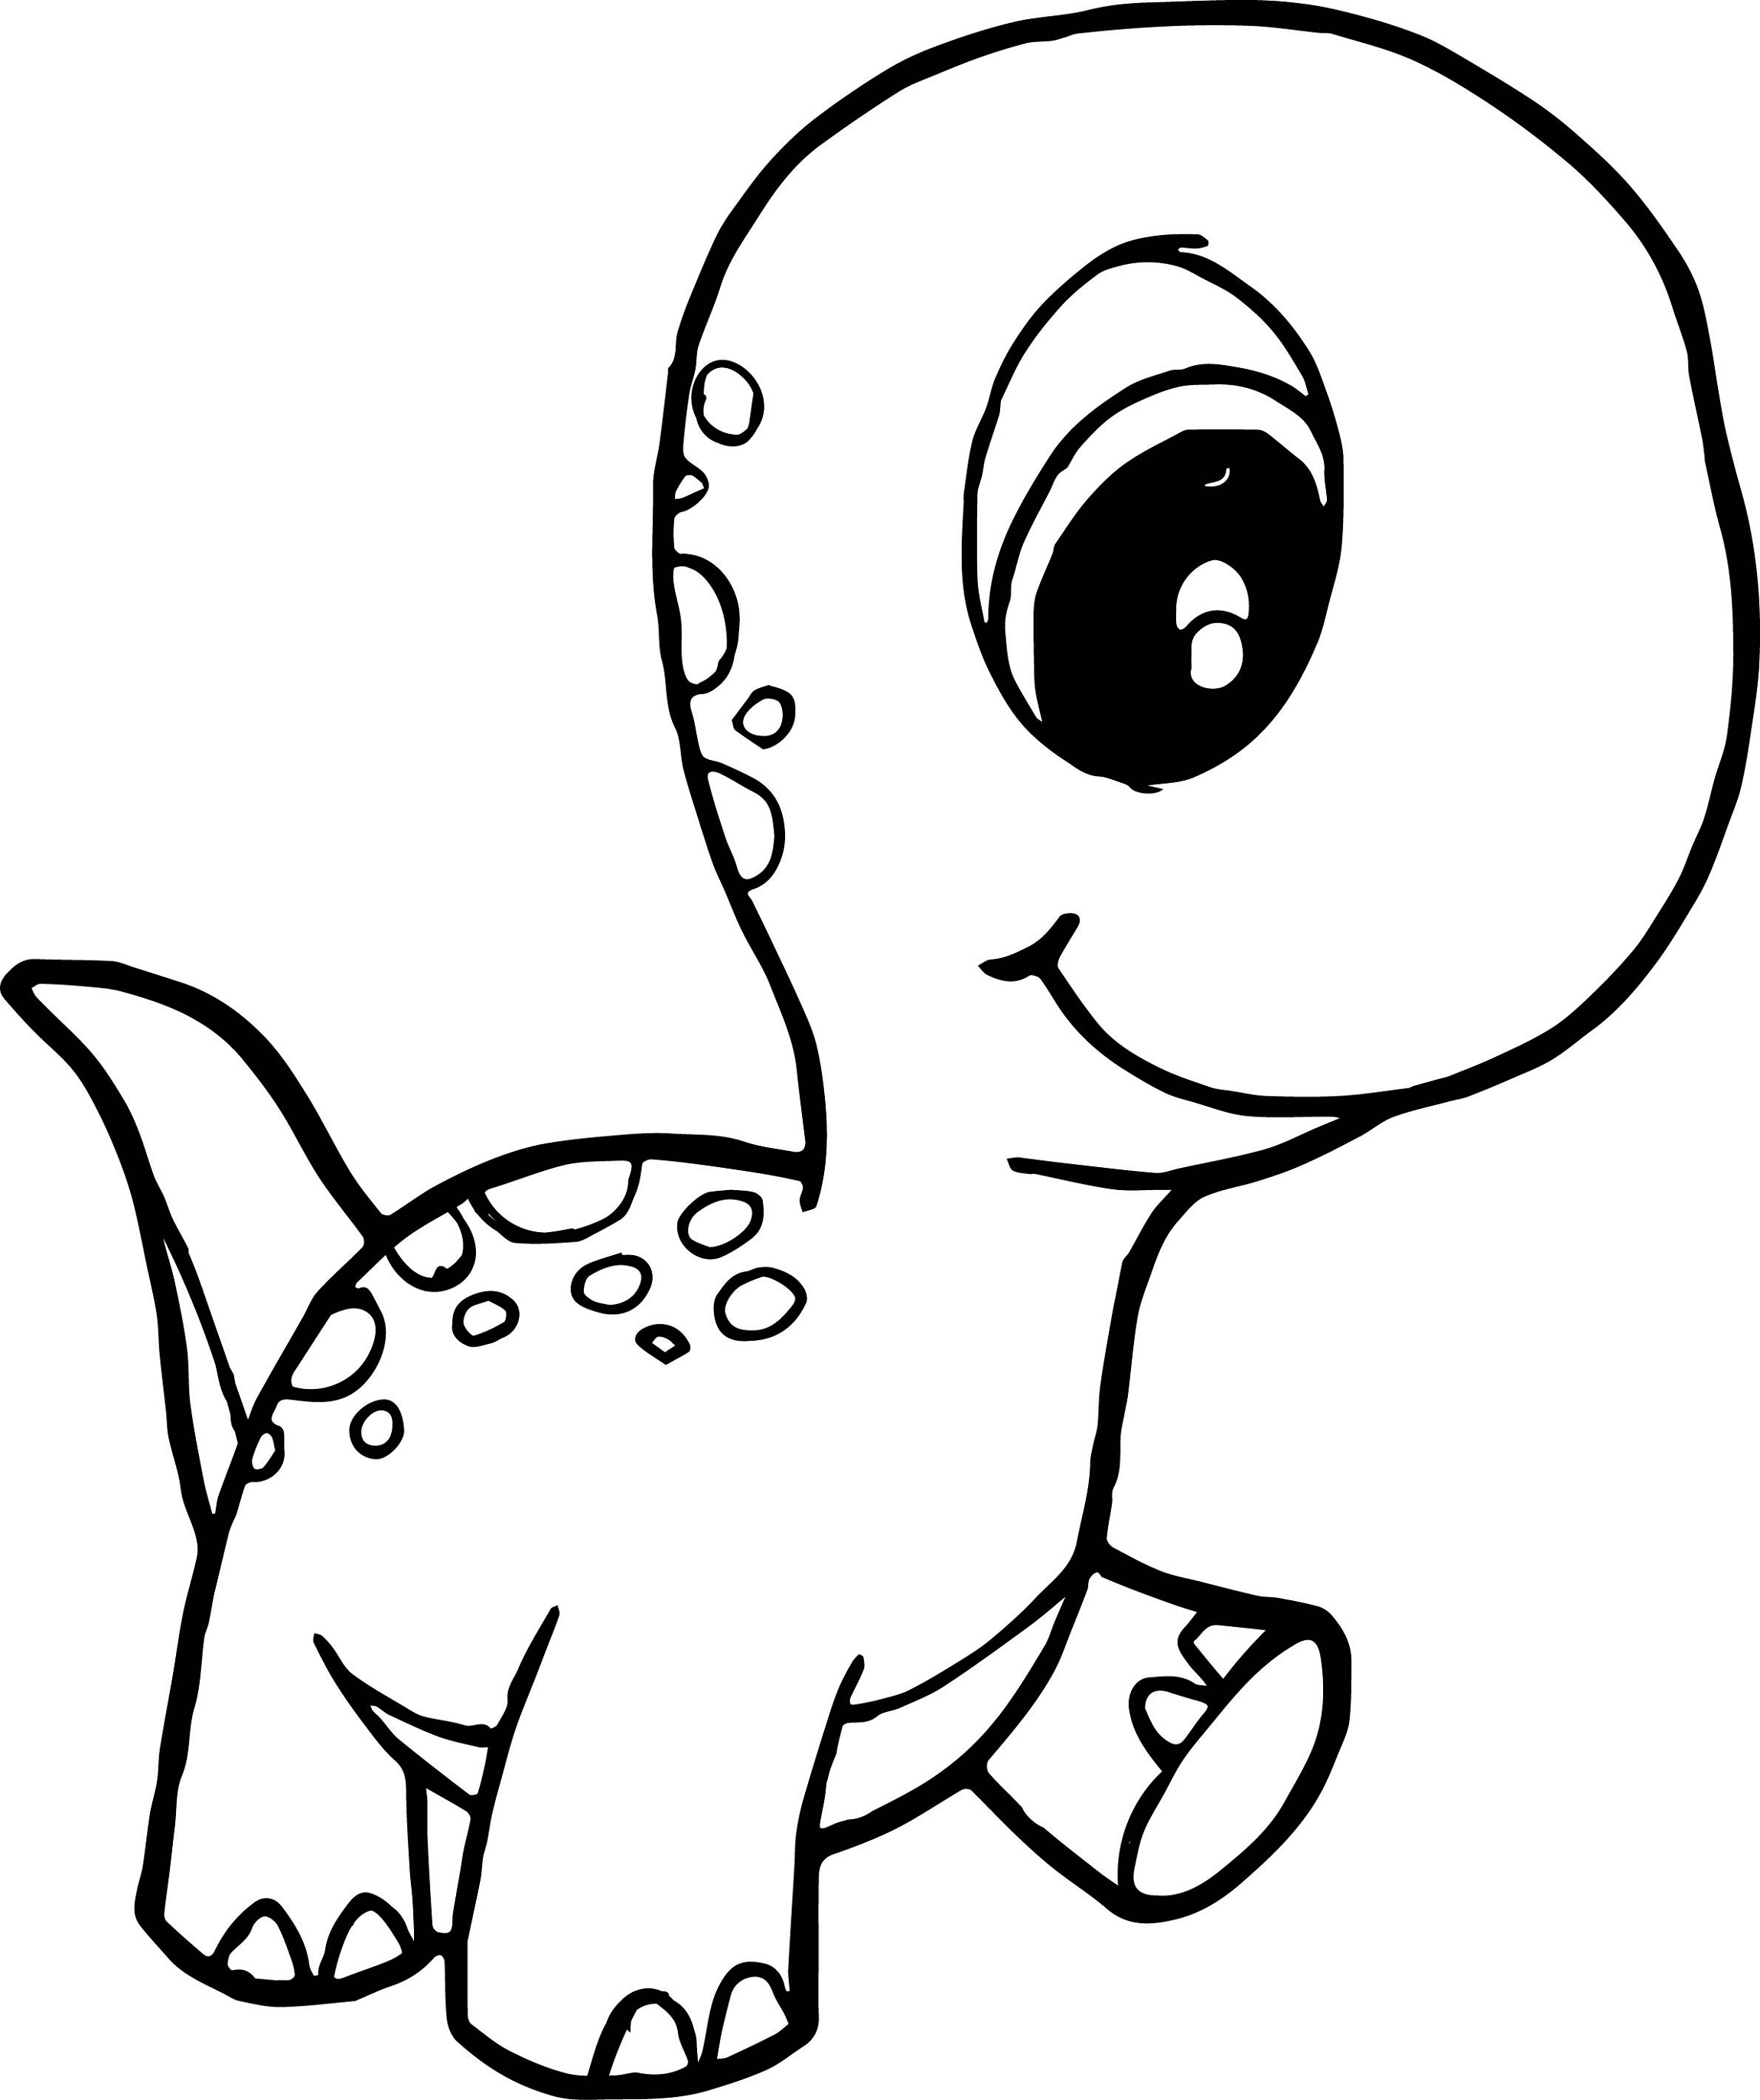 dinosaur printout free printable triceratops coloring pages for kids dinosaur printout